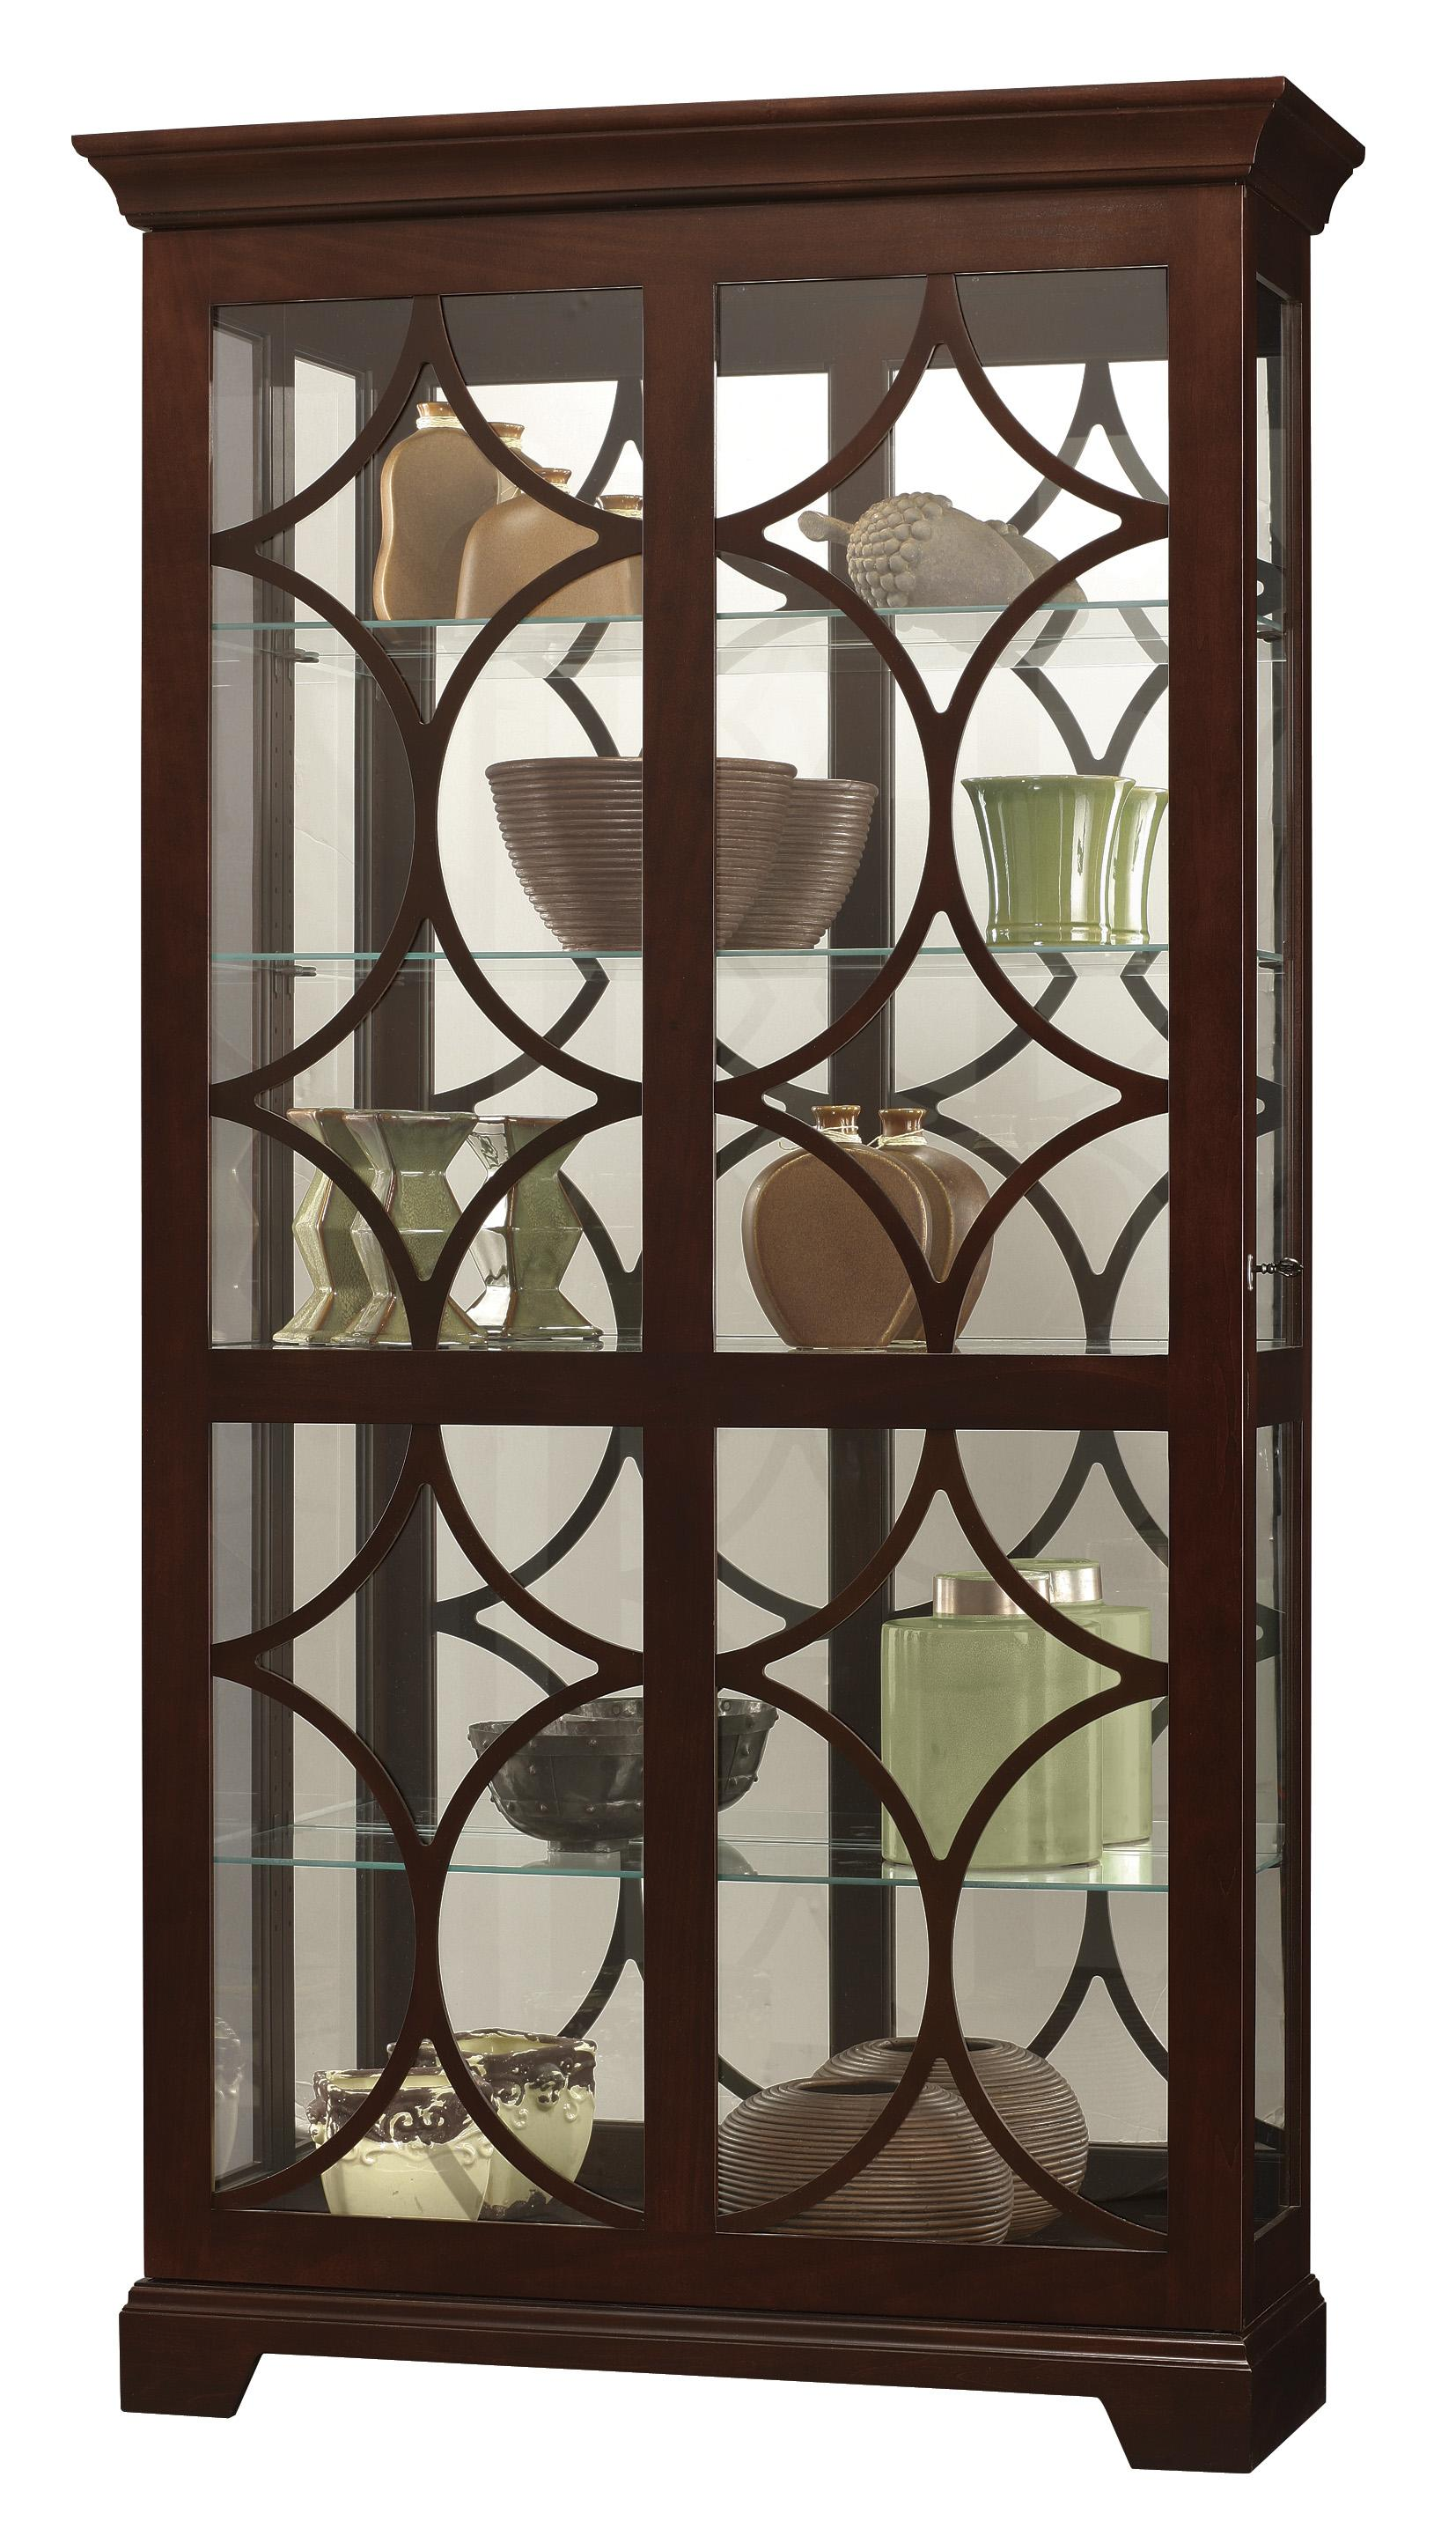 Howard Miller Furniture Trend Designs Curios Morriston Display Cabinet - Item Number: 680-493